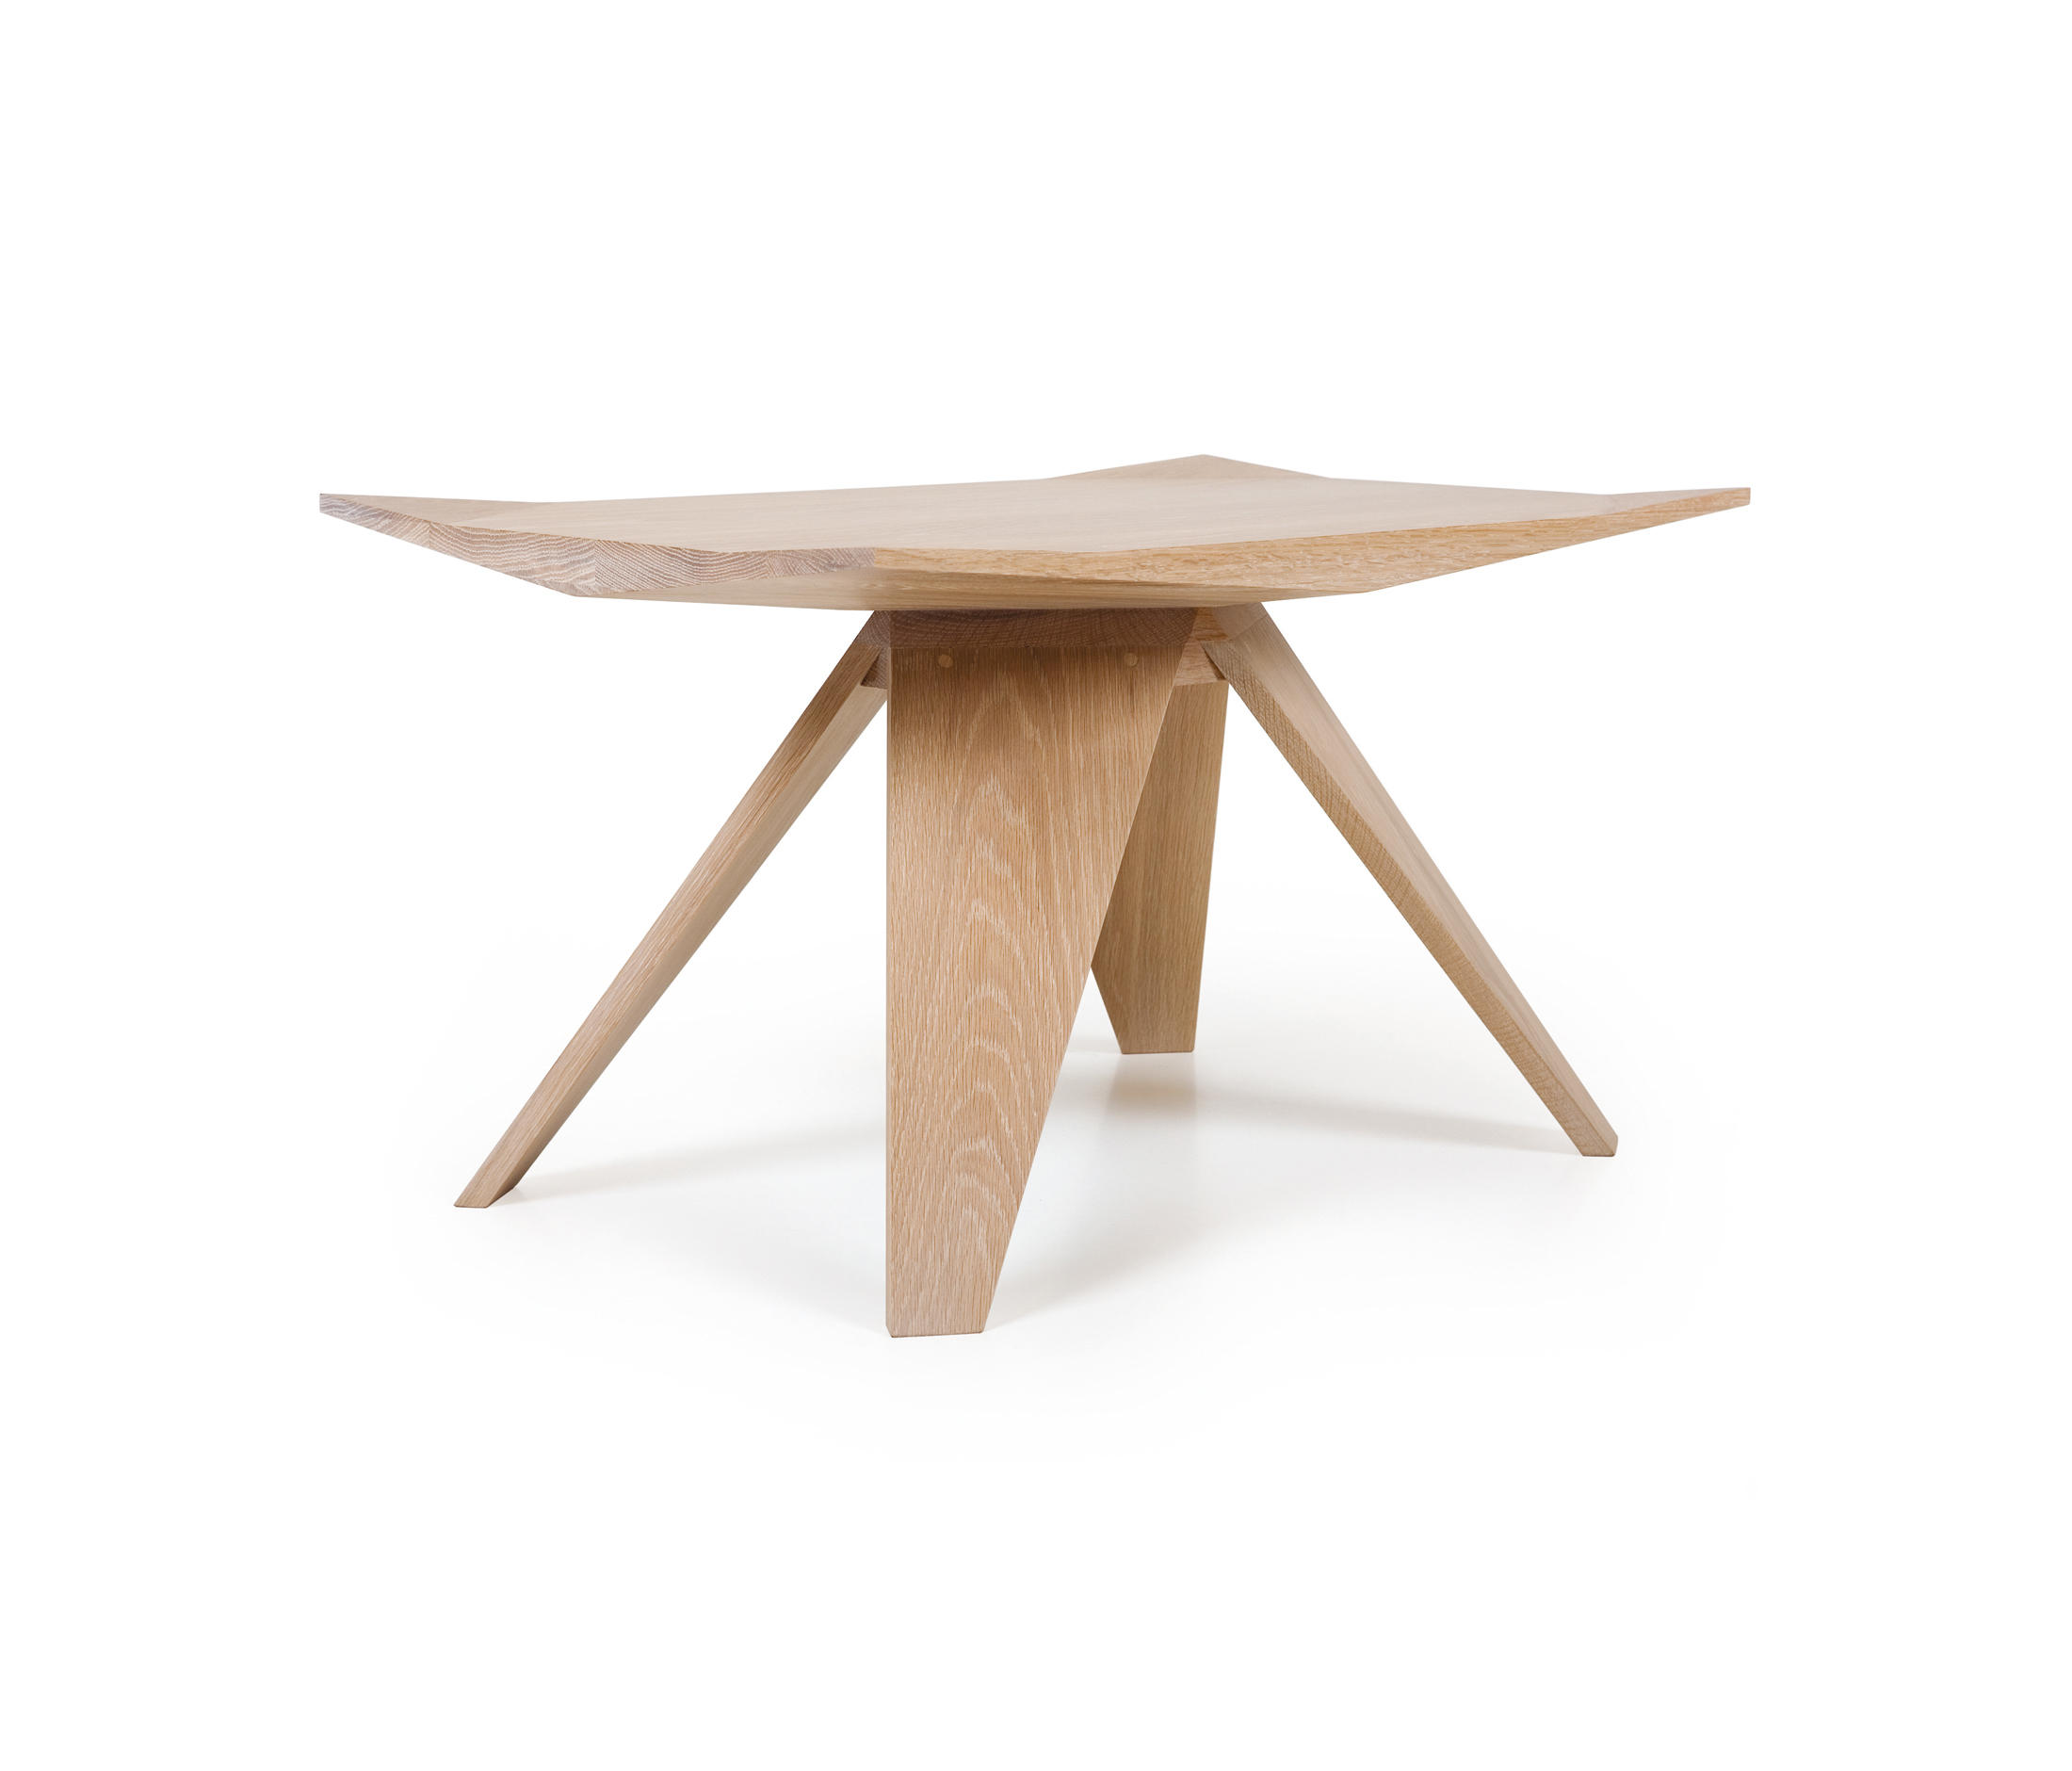 Thin side table side tables from matthew hilton architonic for Thin side table